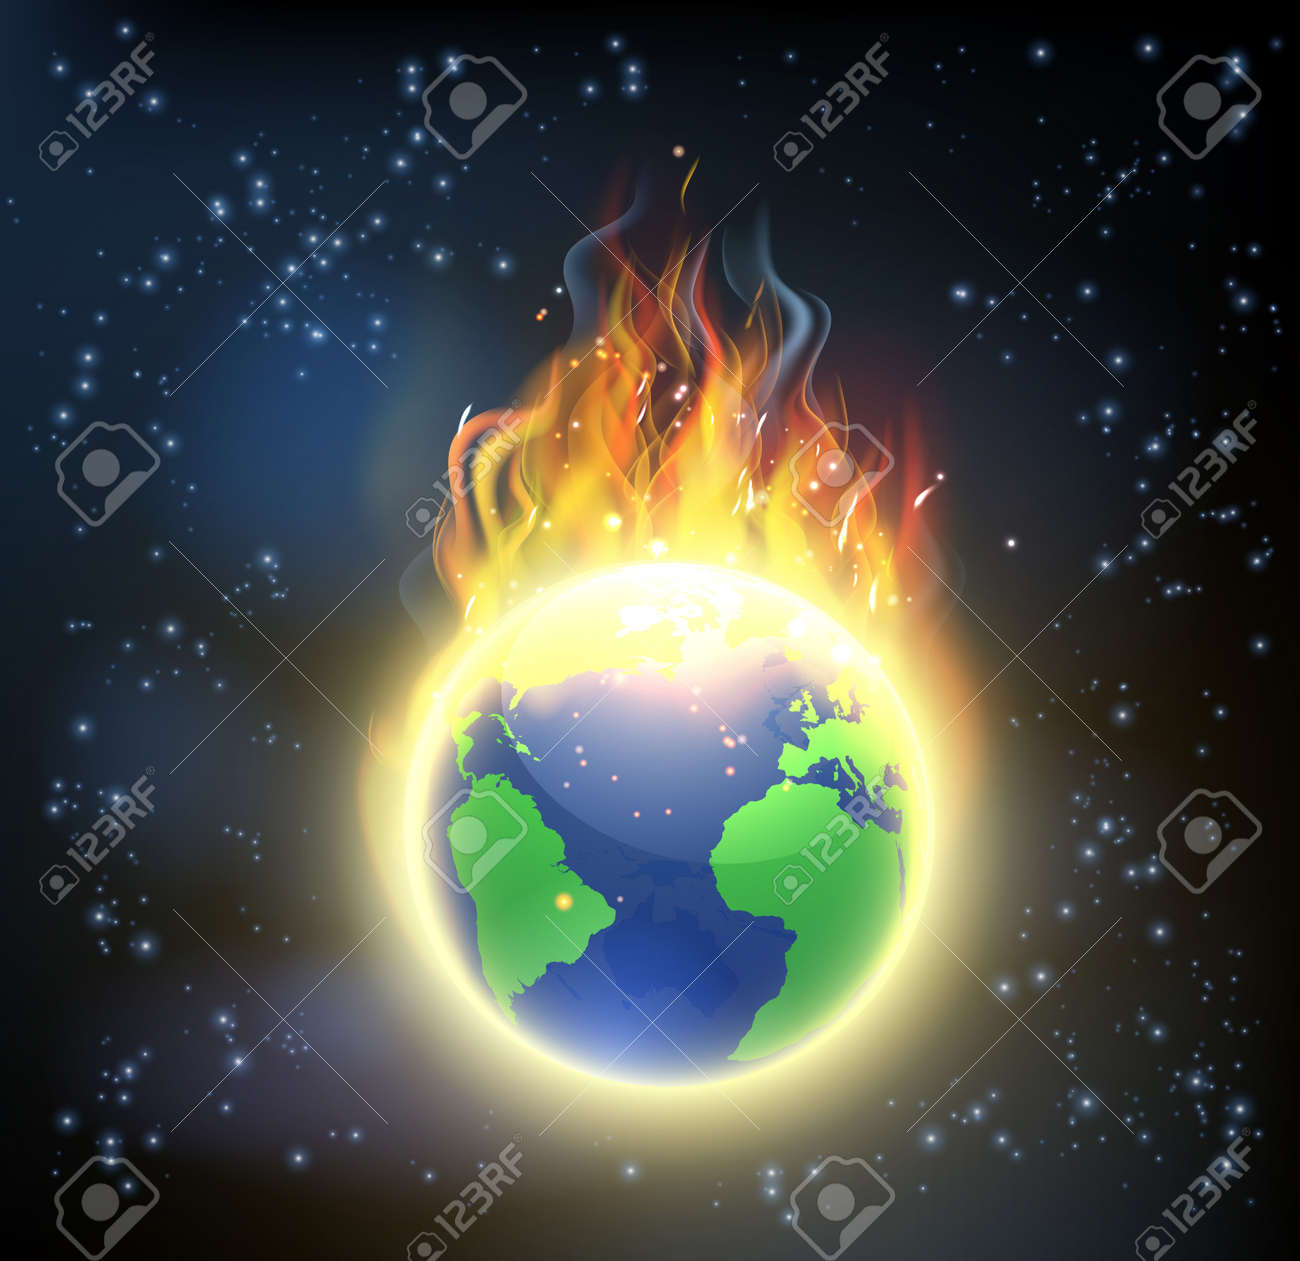 The earth world globe on fire, concept for climate change, global warming, or other disasters - 59997514